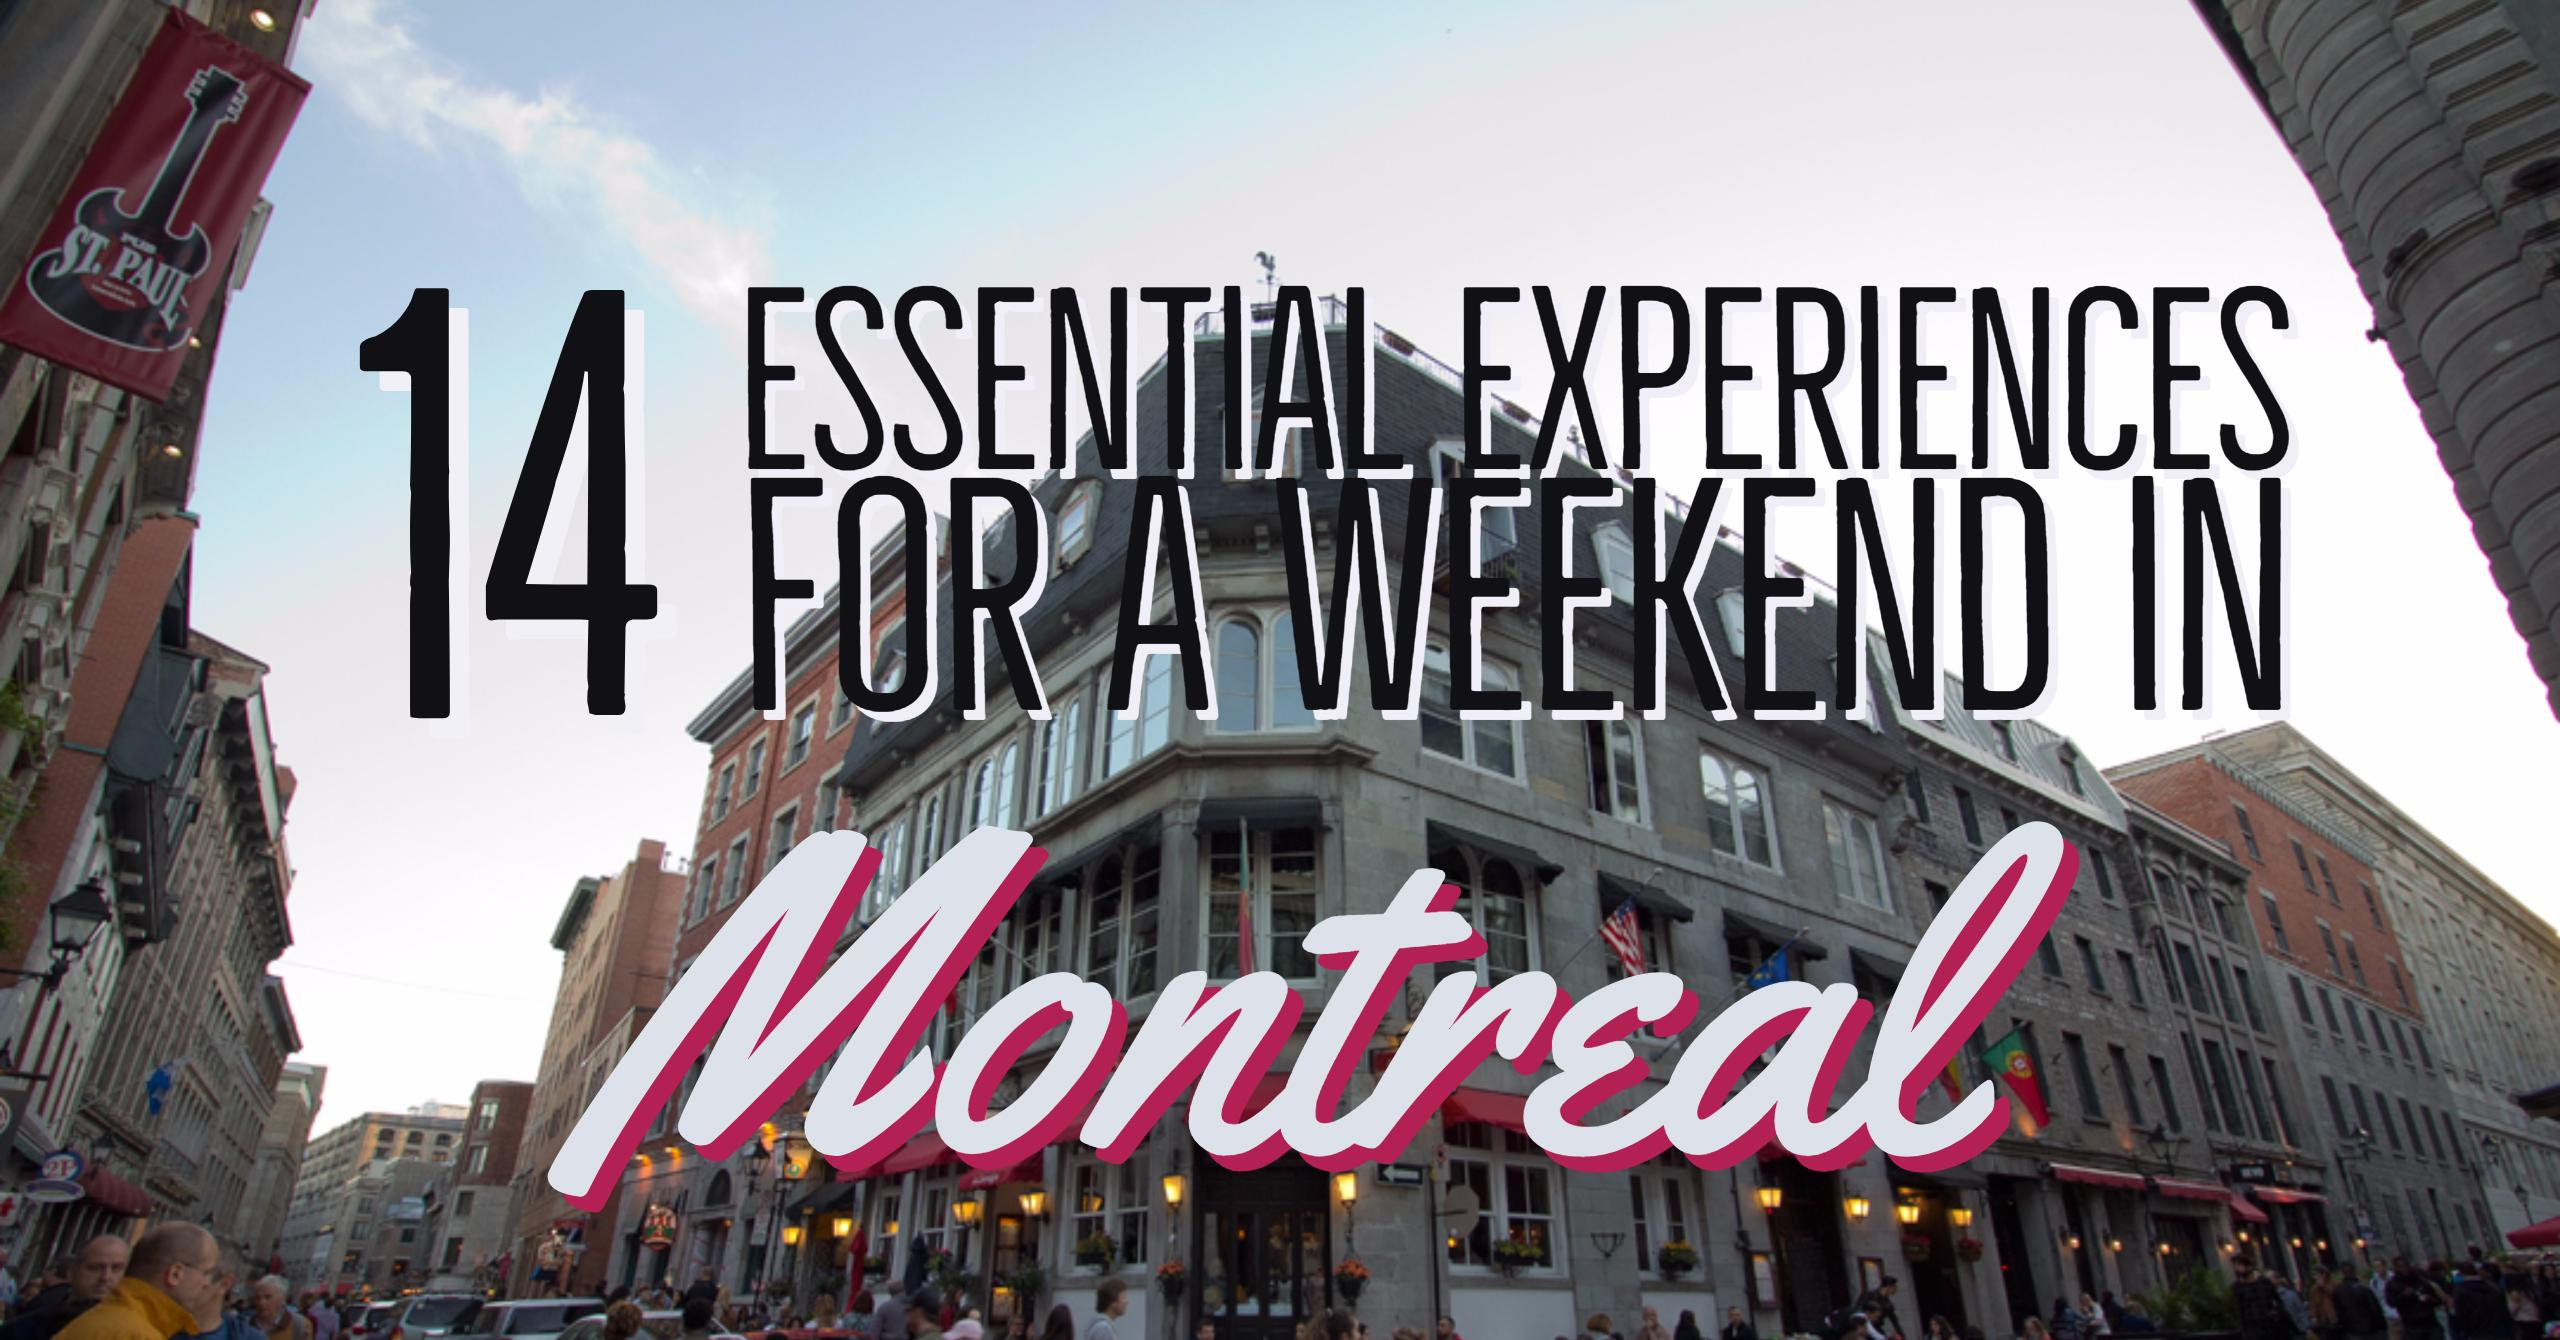 14 essential experiences for a weekend in Montreal, Quebec, Canada | My Wandering Voyage travel blog